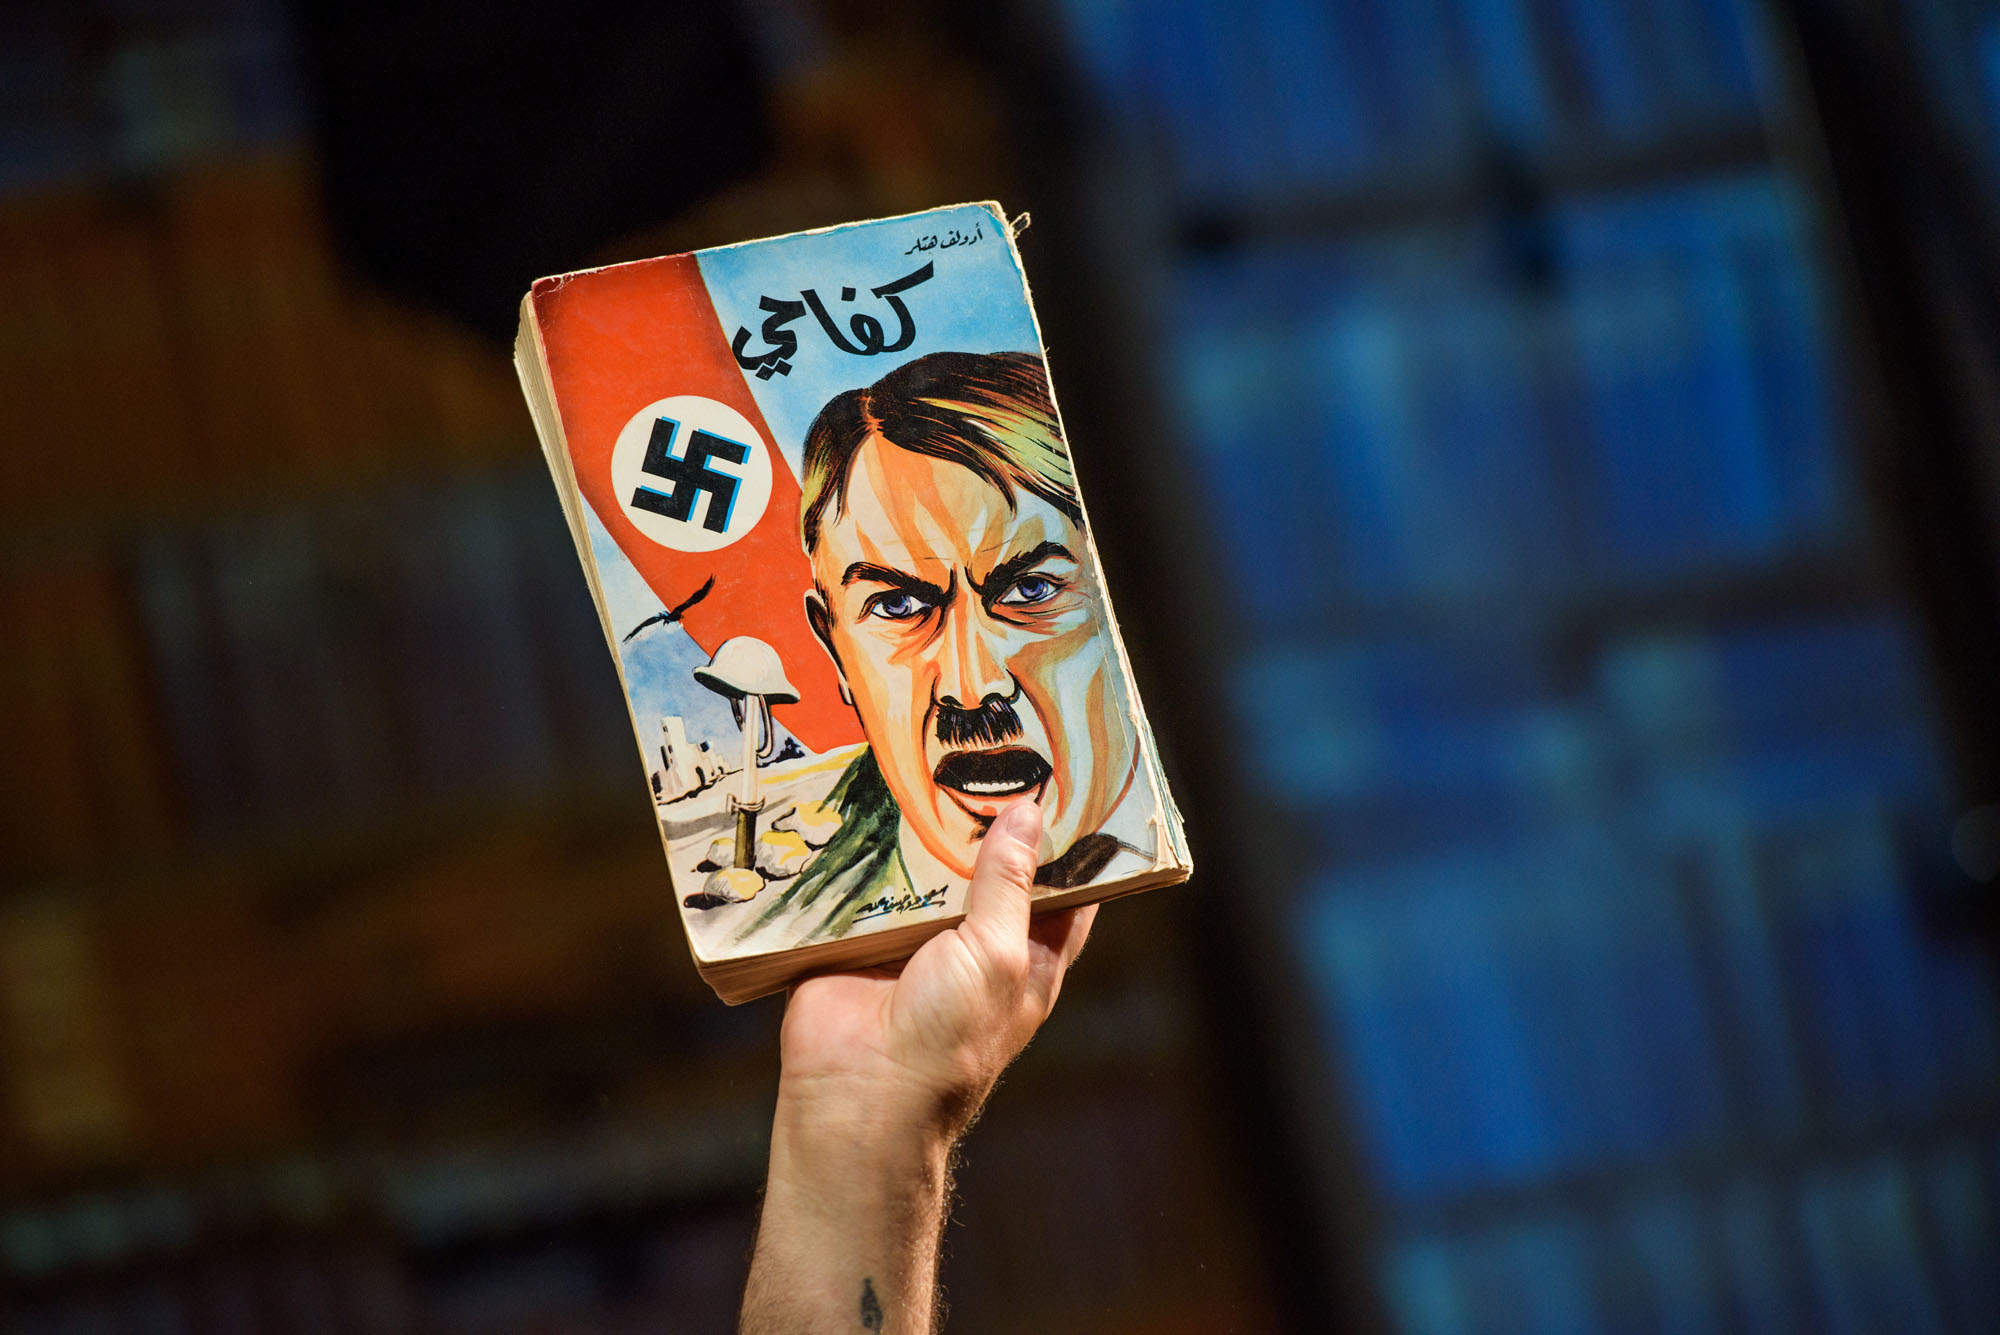 La version arabe de «Mein Kampf». D. R.